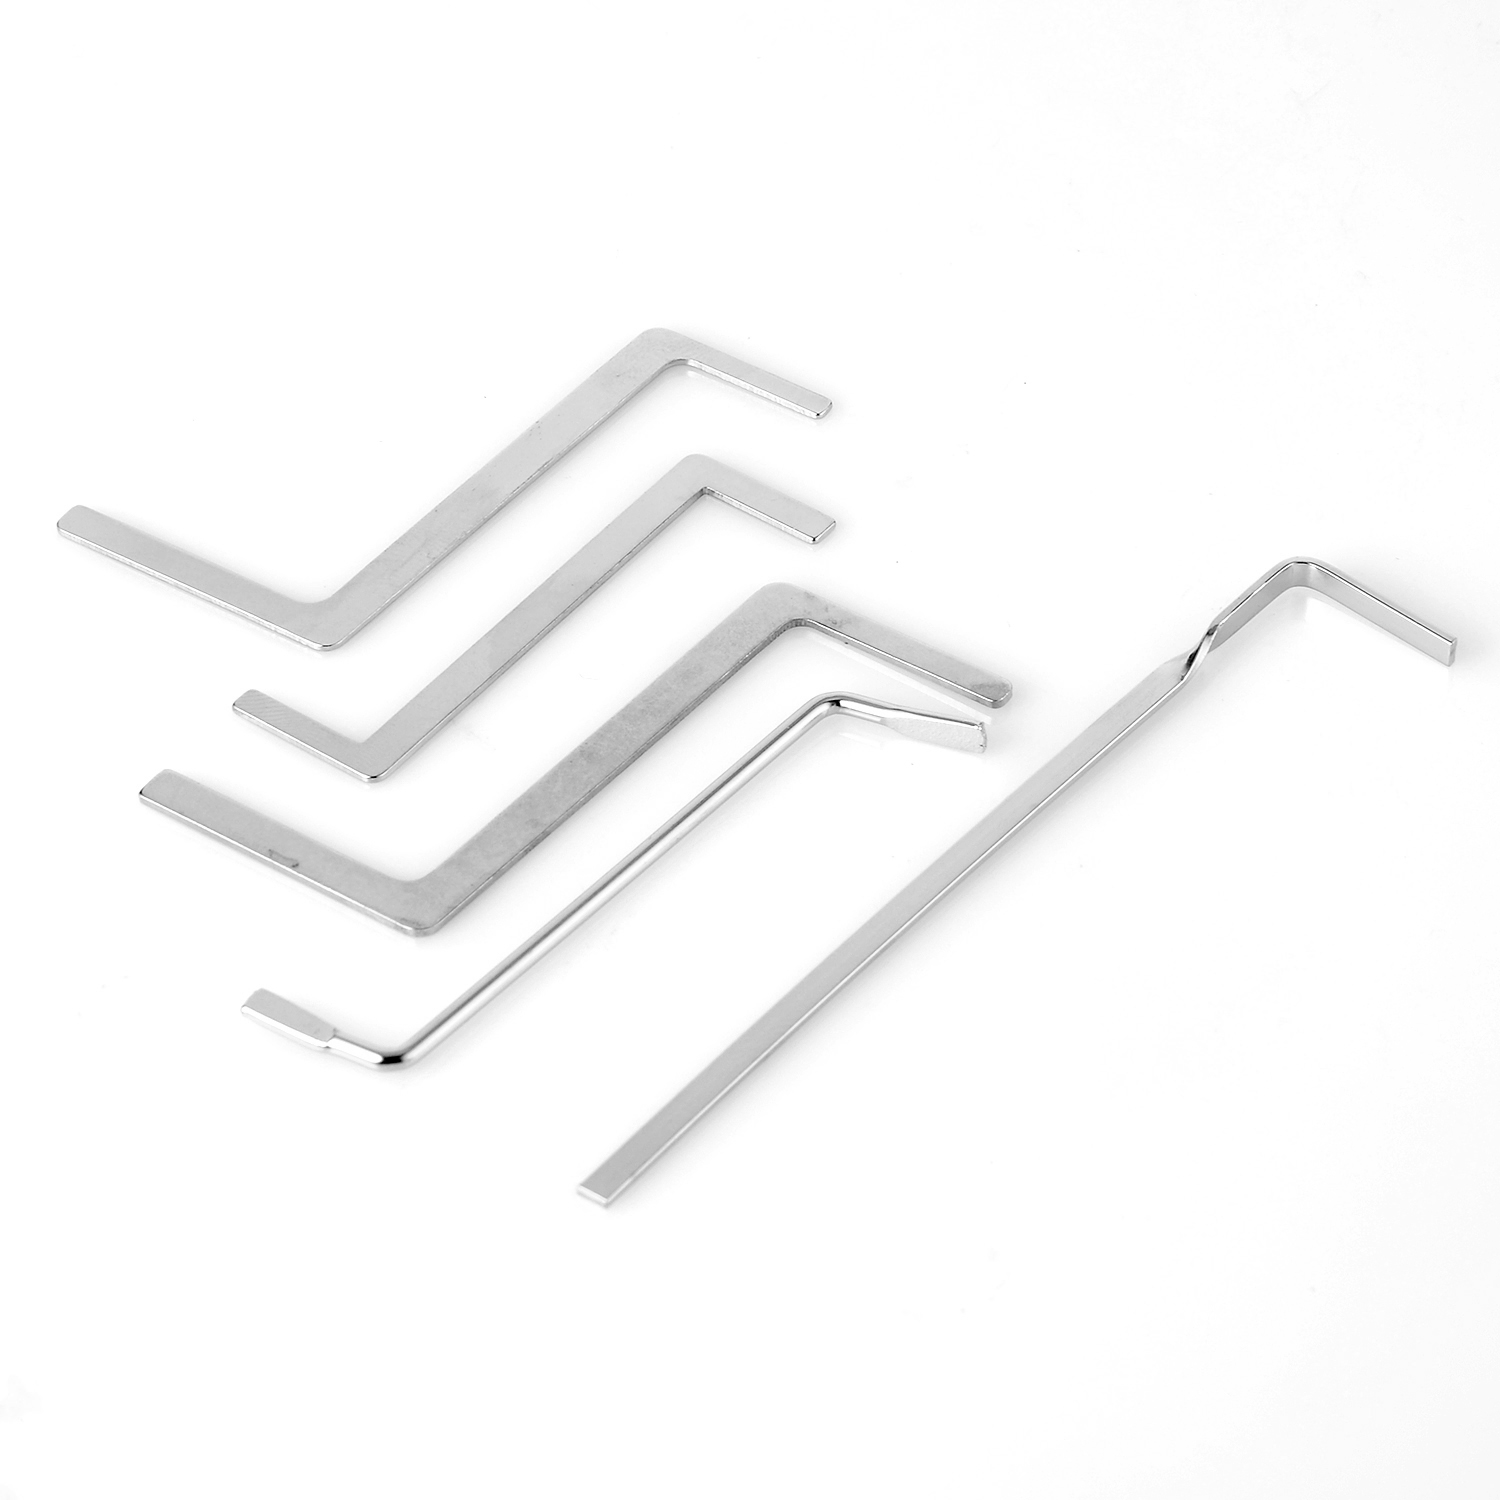 Hot!5 Pcs Locksmith Tools Multifunction Metal Tension Rod/Puch Rod Tubestension Wrench For Locksmith Supply P00 ...